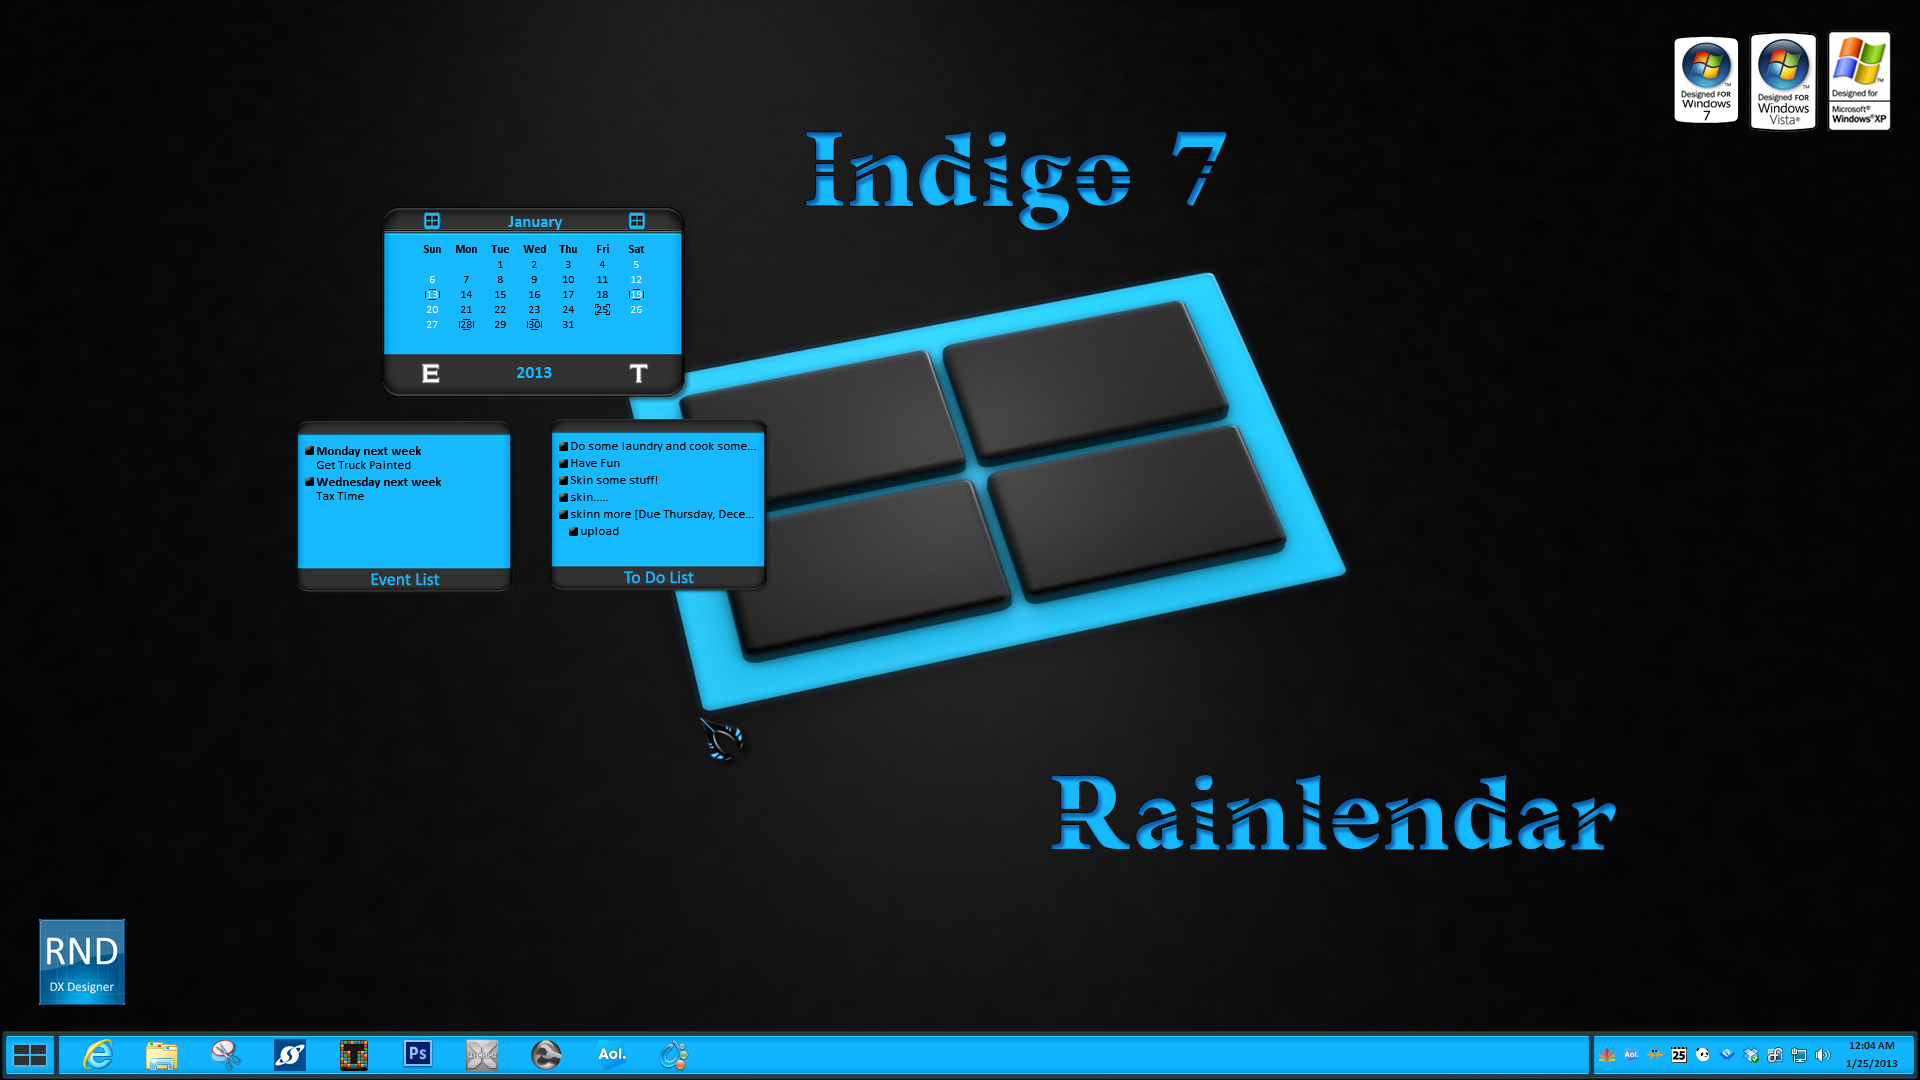 Indigo7 Rainlendar